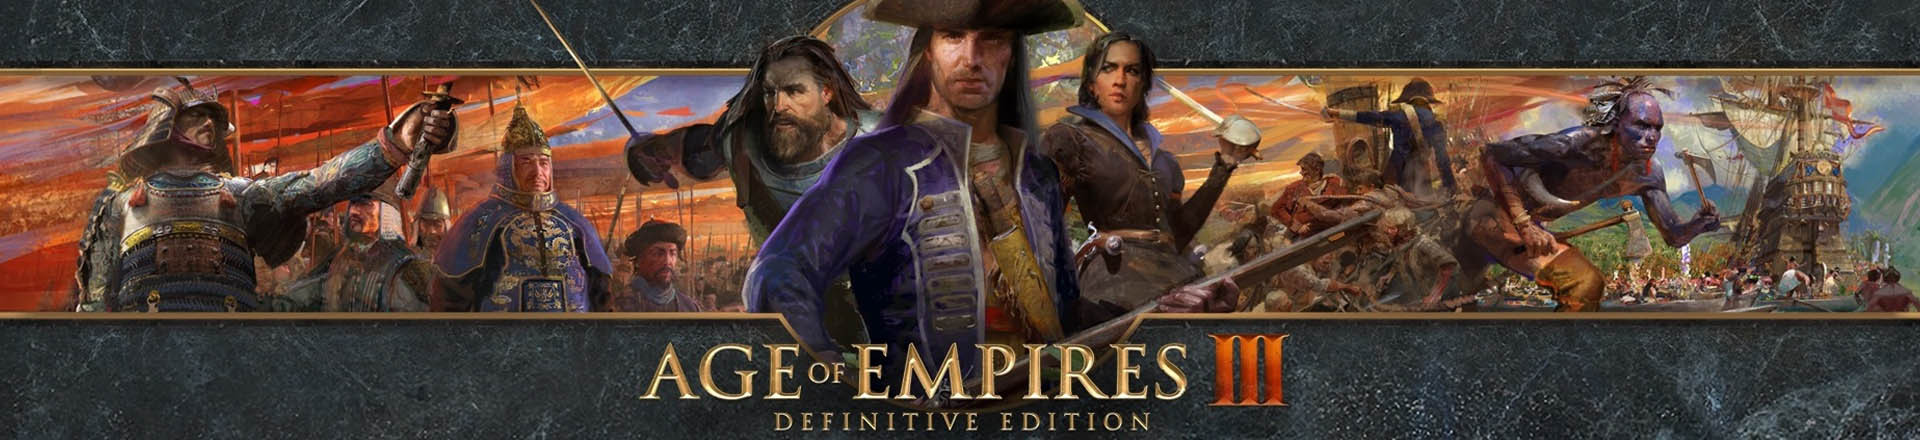 Age of Empires 3: Definitive Edition